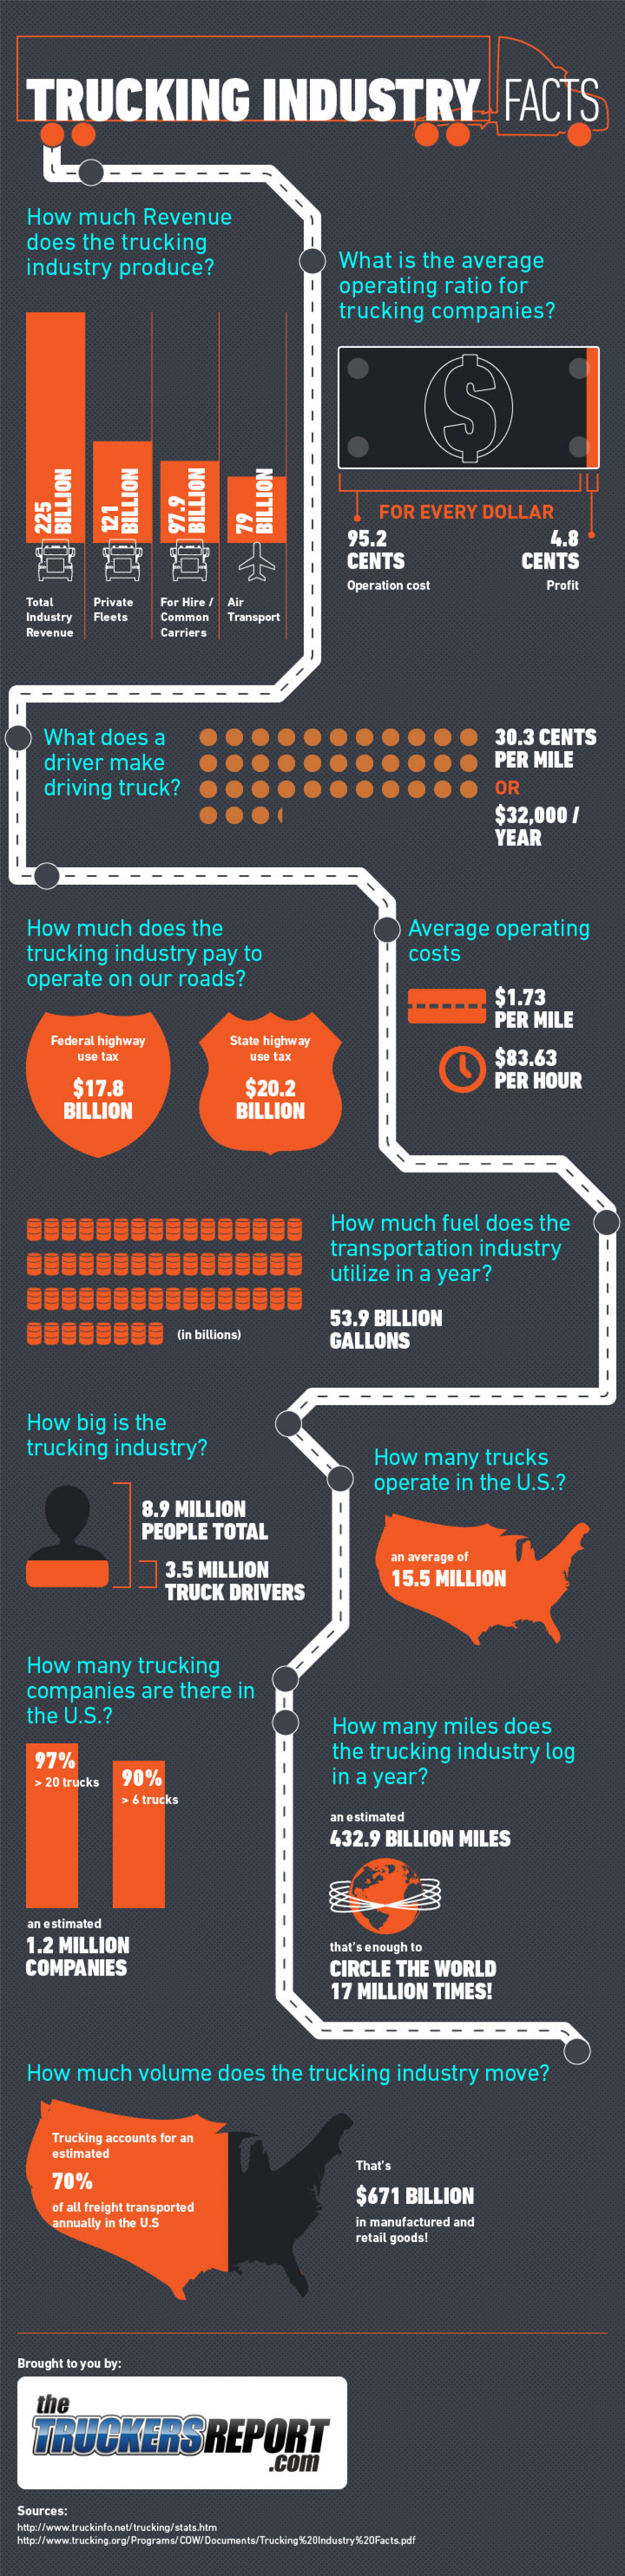 Trucking Industry Facts Infographic